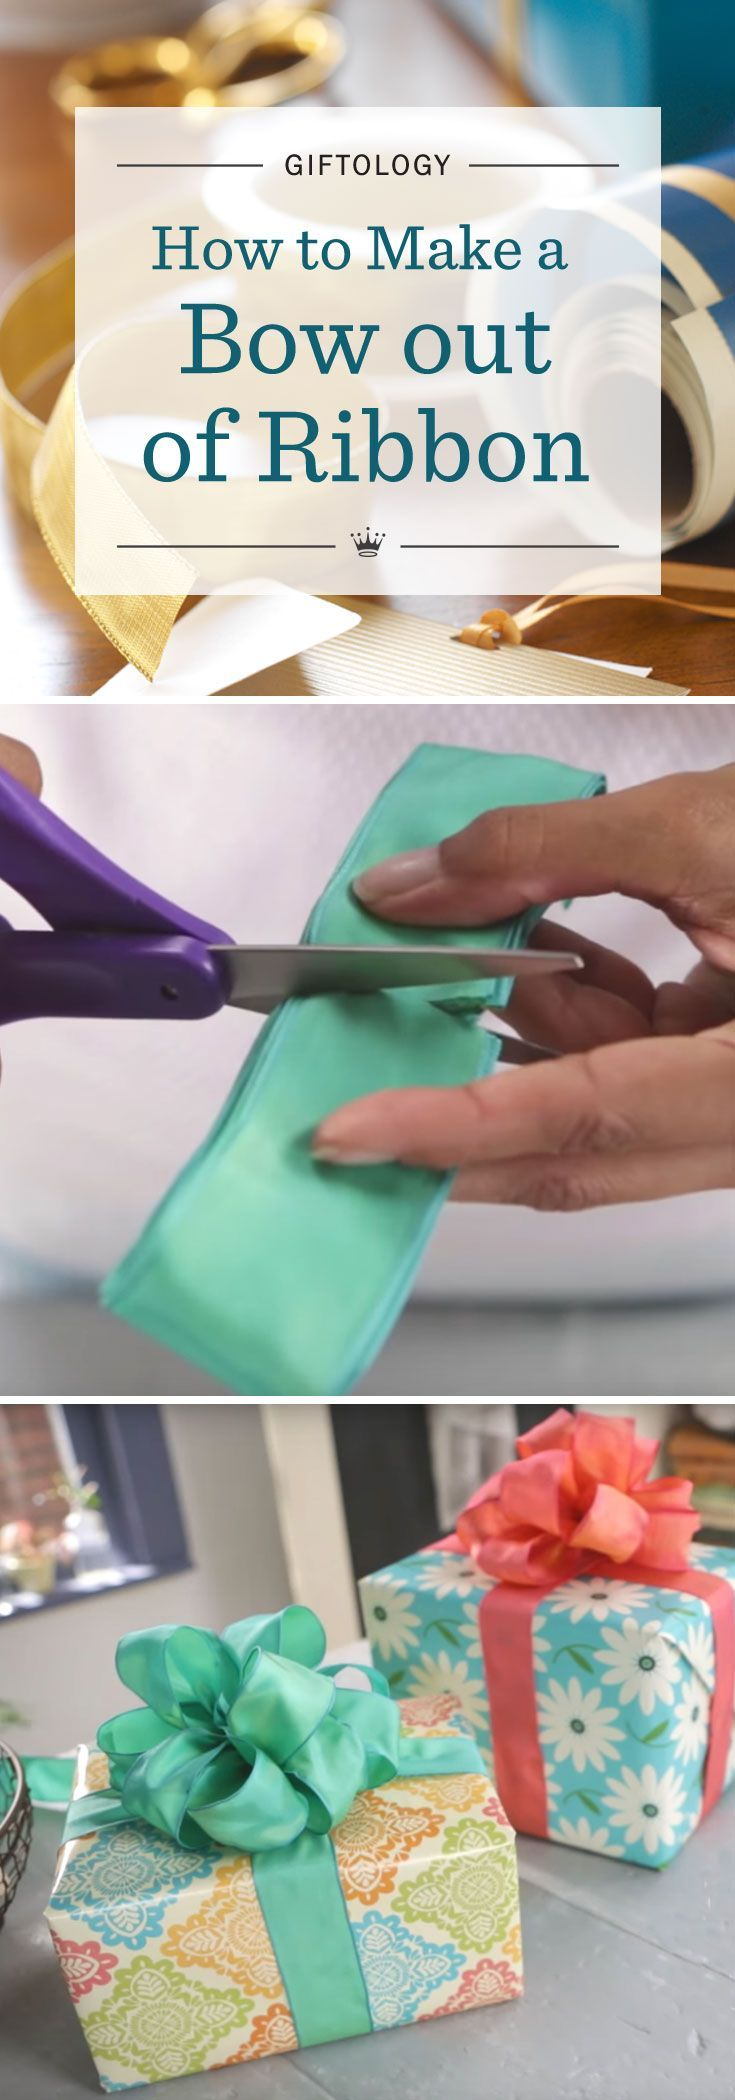 Giftology: How To Make A Bow Out Of Ribbon  Learn The Art Of Gift